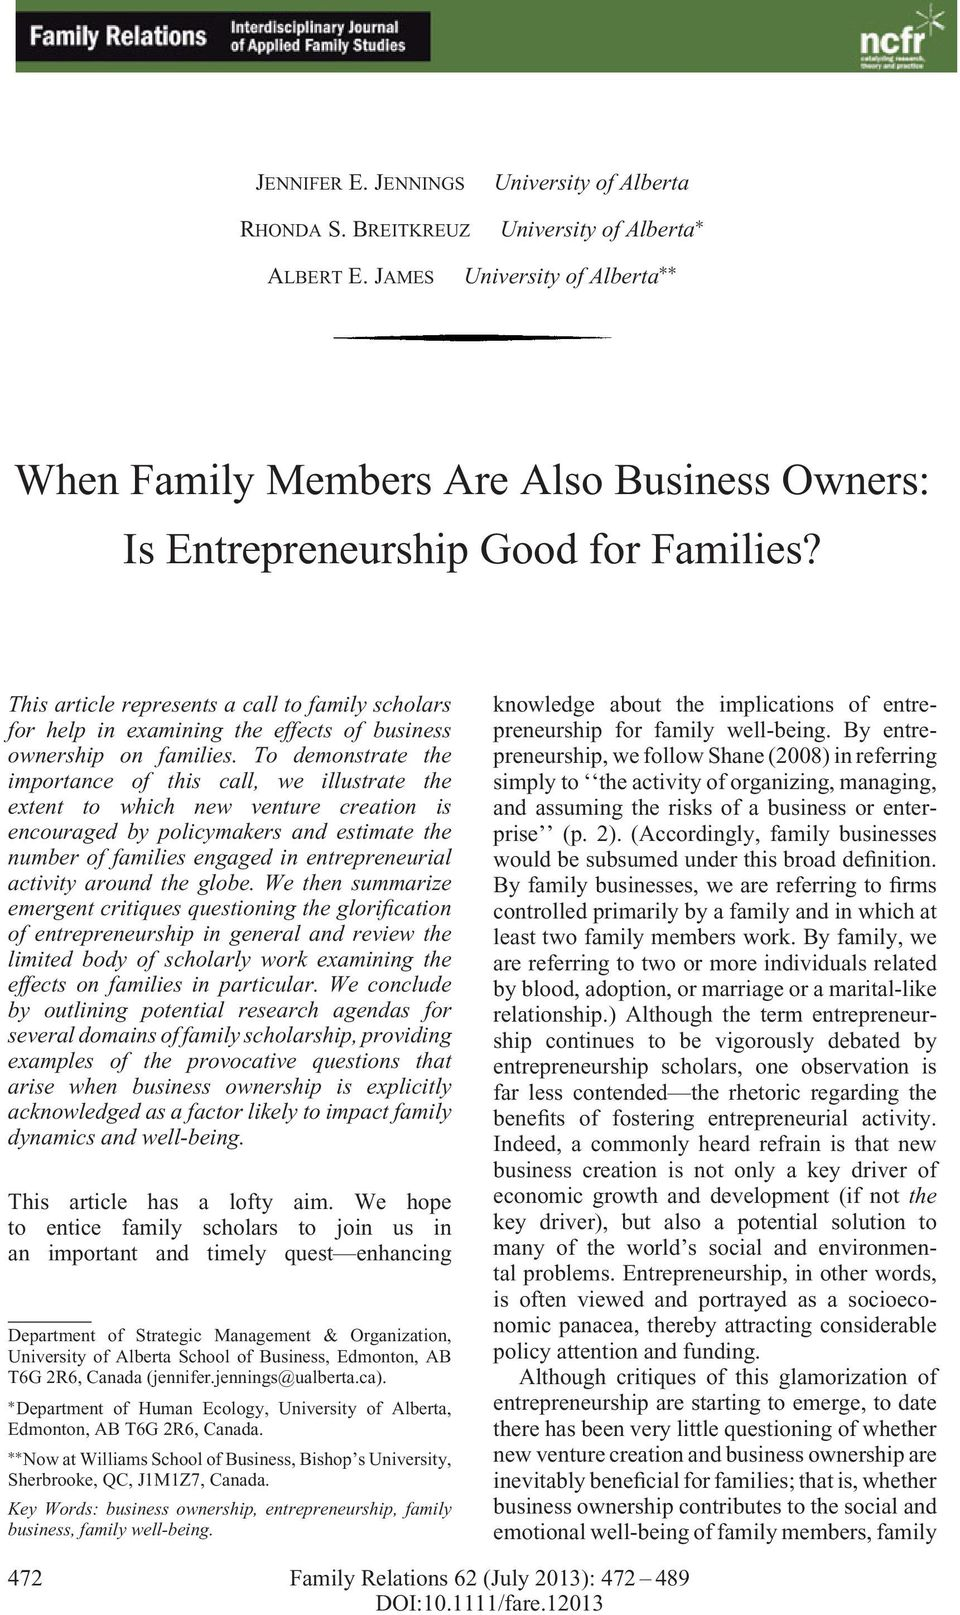 This article represents a call to family scholars for help in examining the effects of business ownership on families.